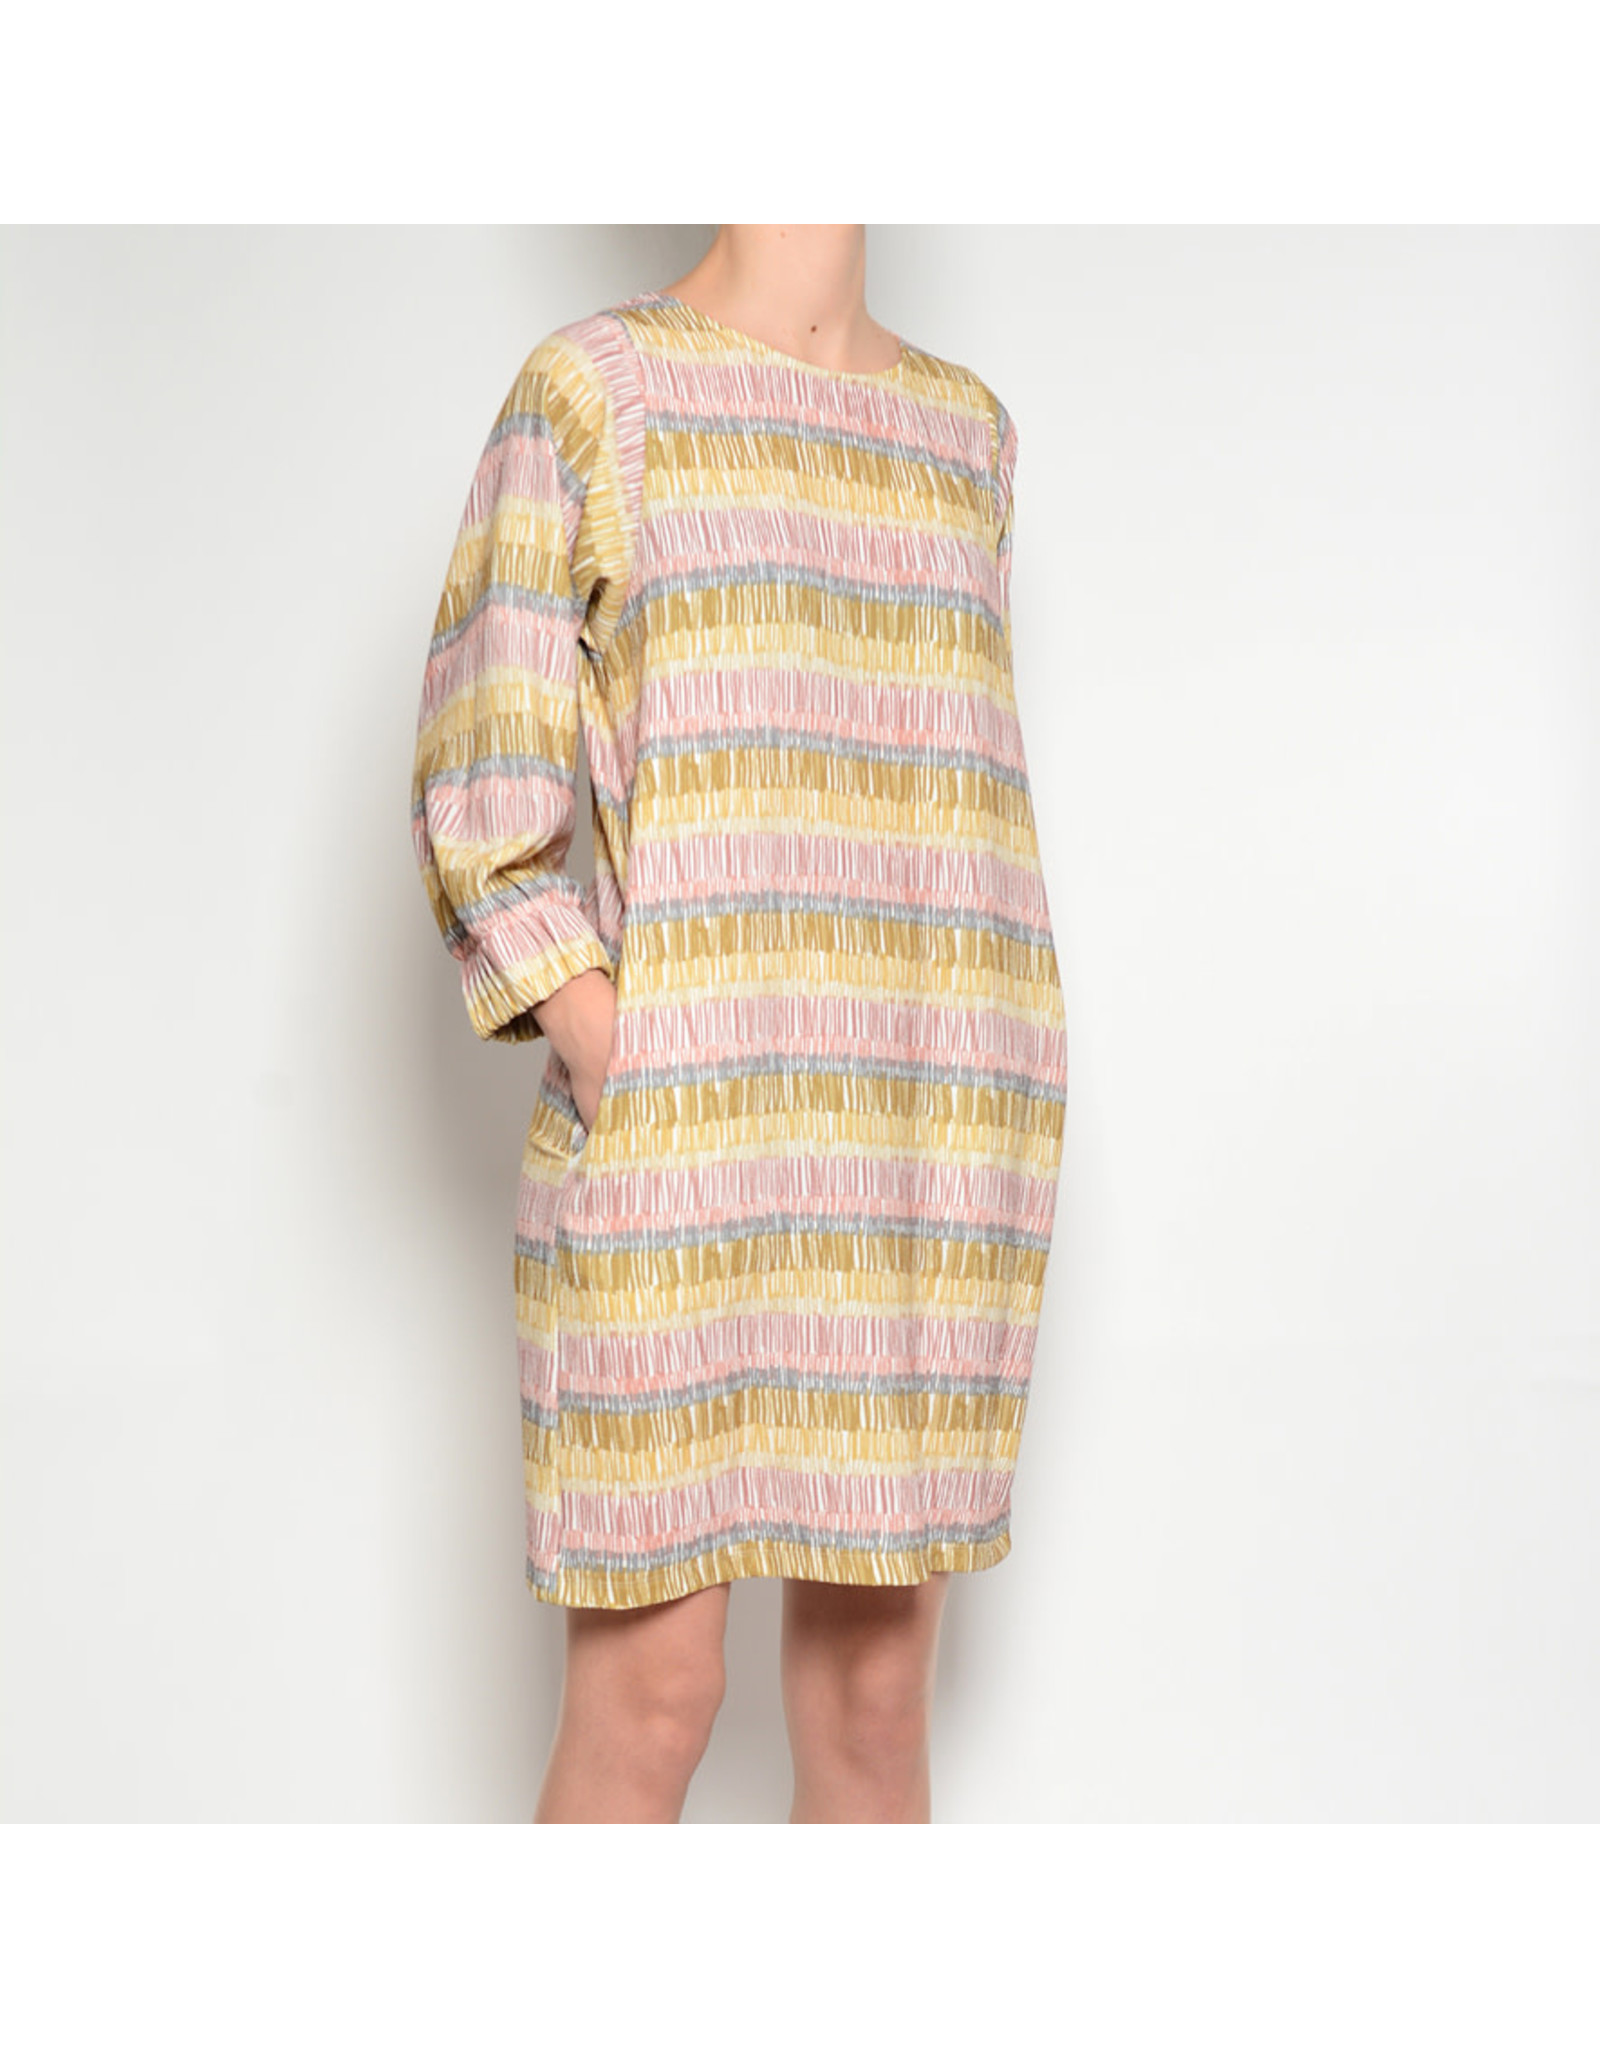 Pan Pan Multi Print Dress